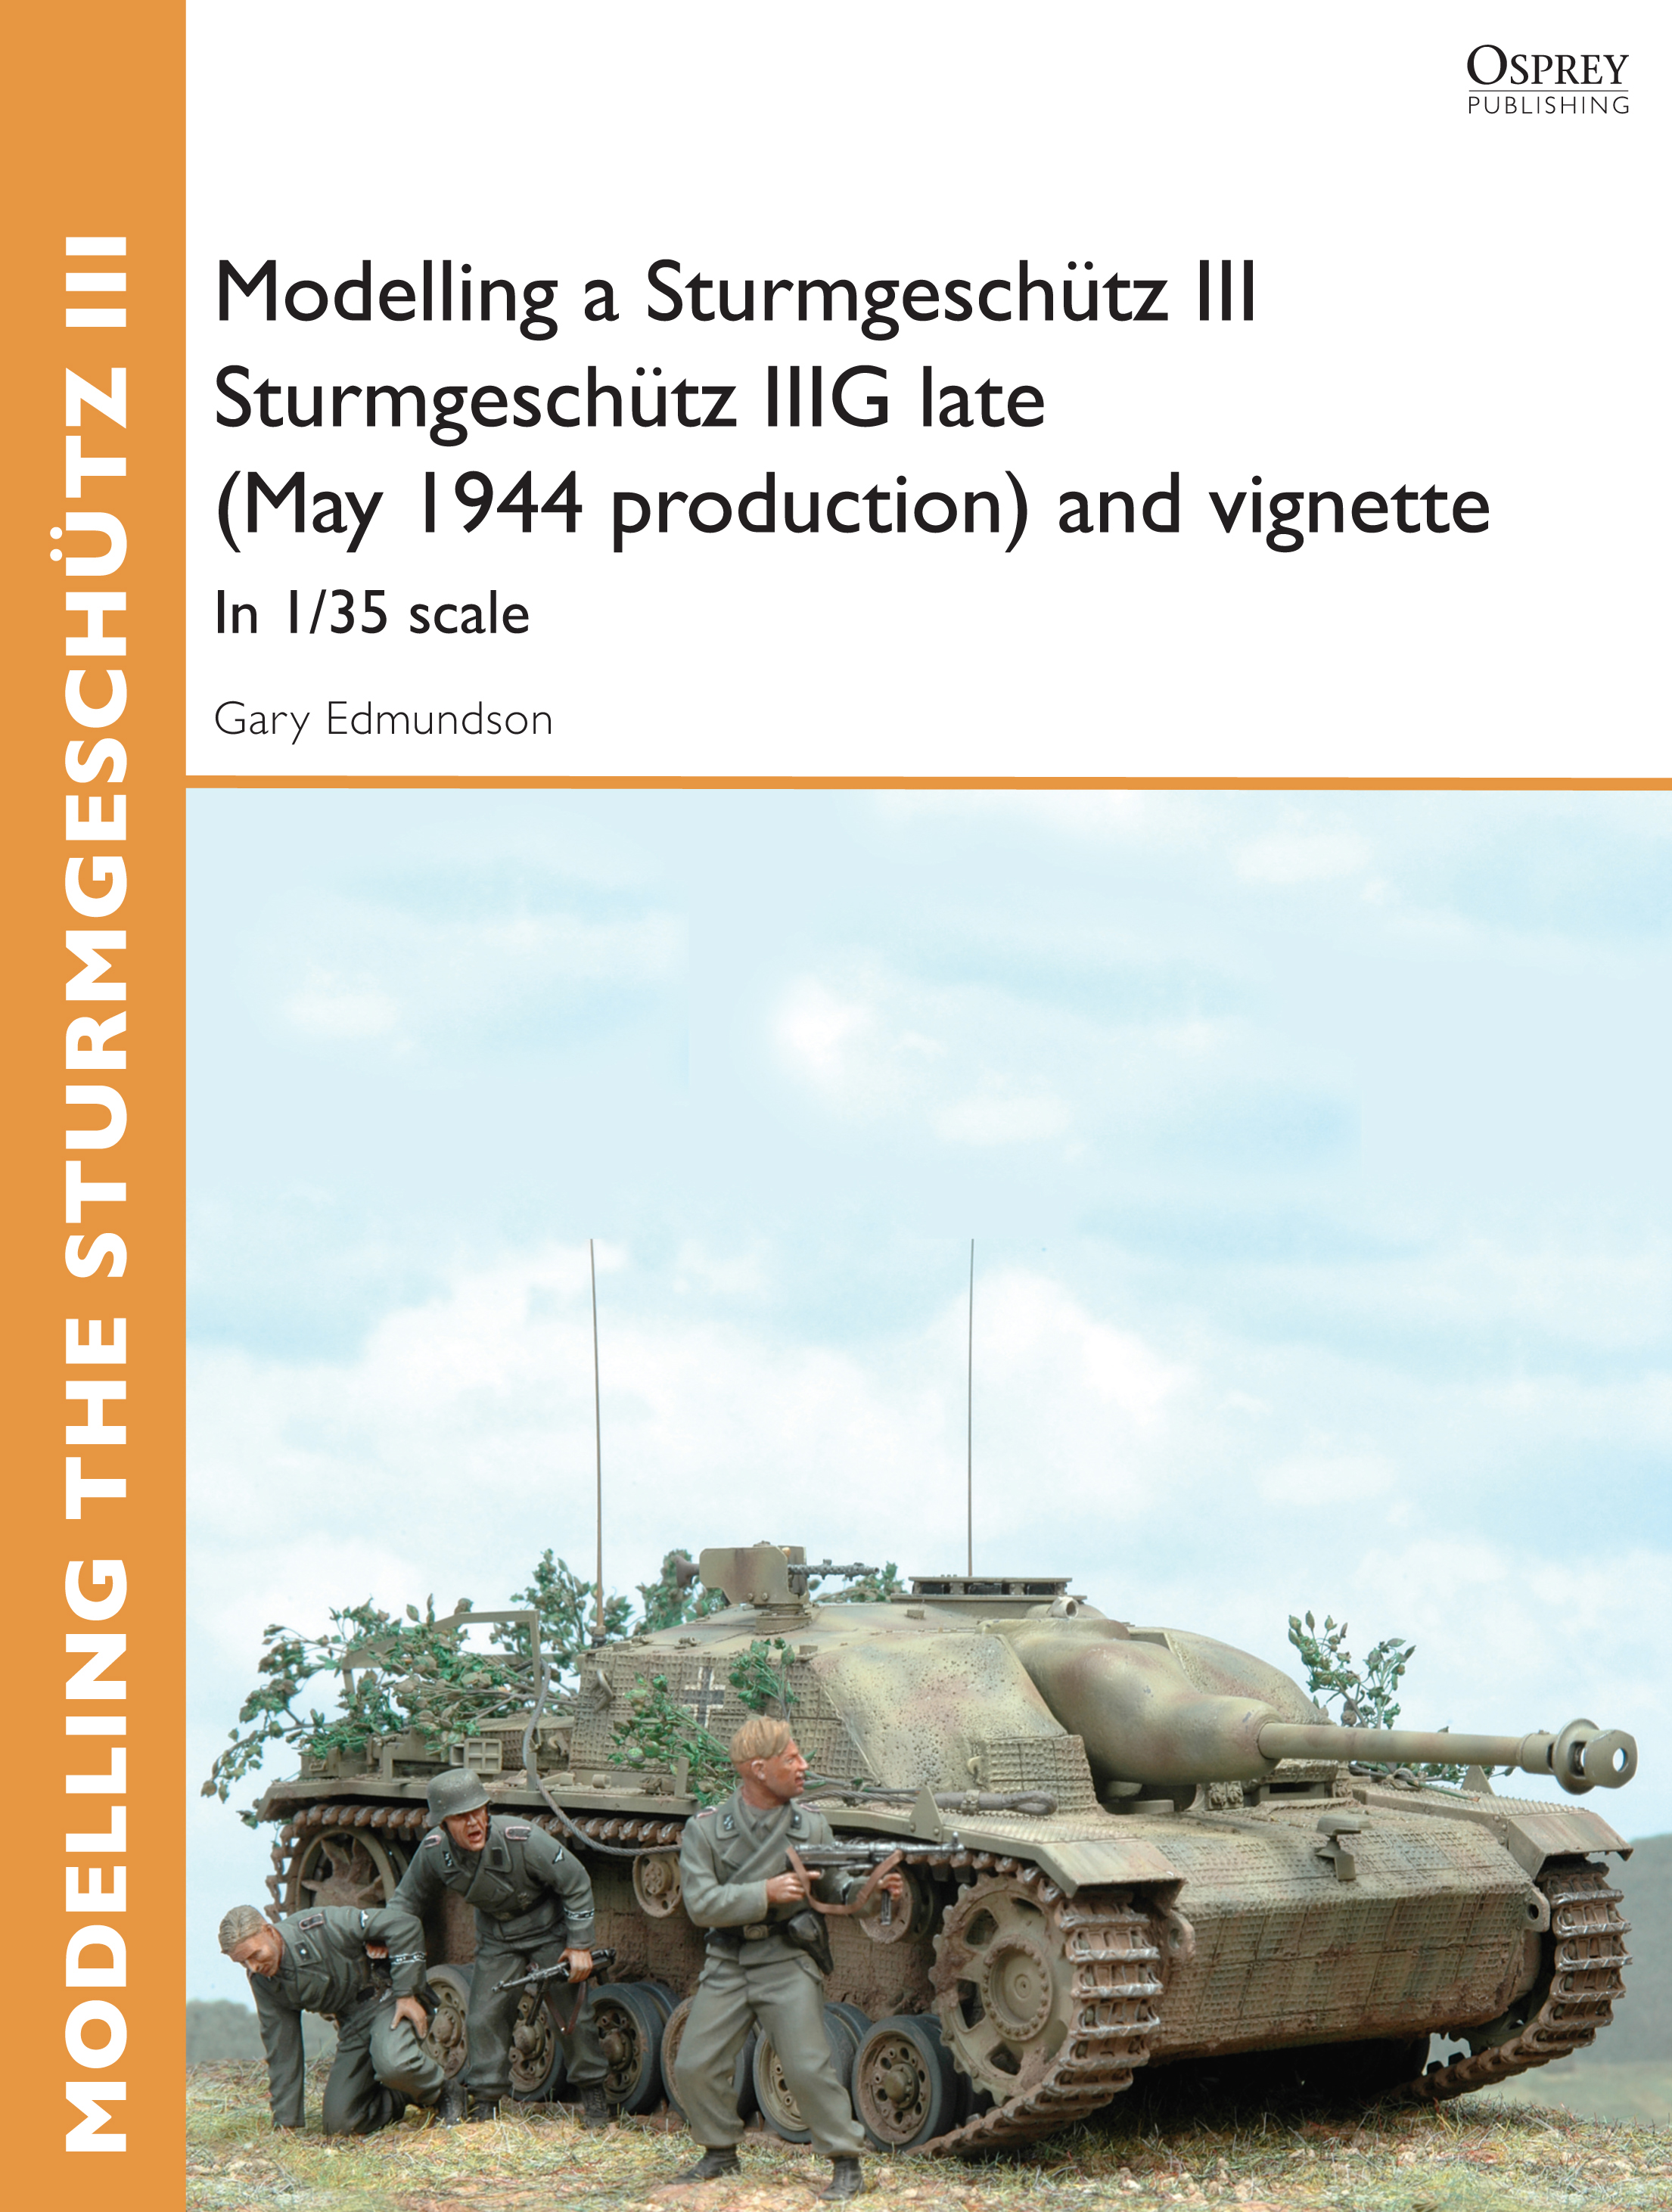 Modelling a Sturmgesch�tz III Sturmgesch�tz IIIG late (May 1944 production) and vignette: In 1/35 scale